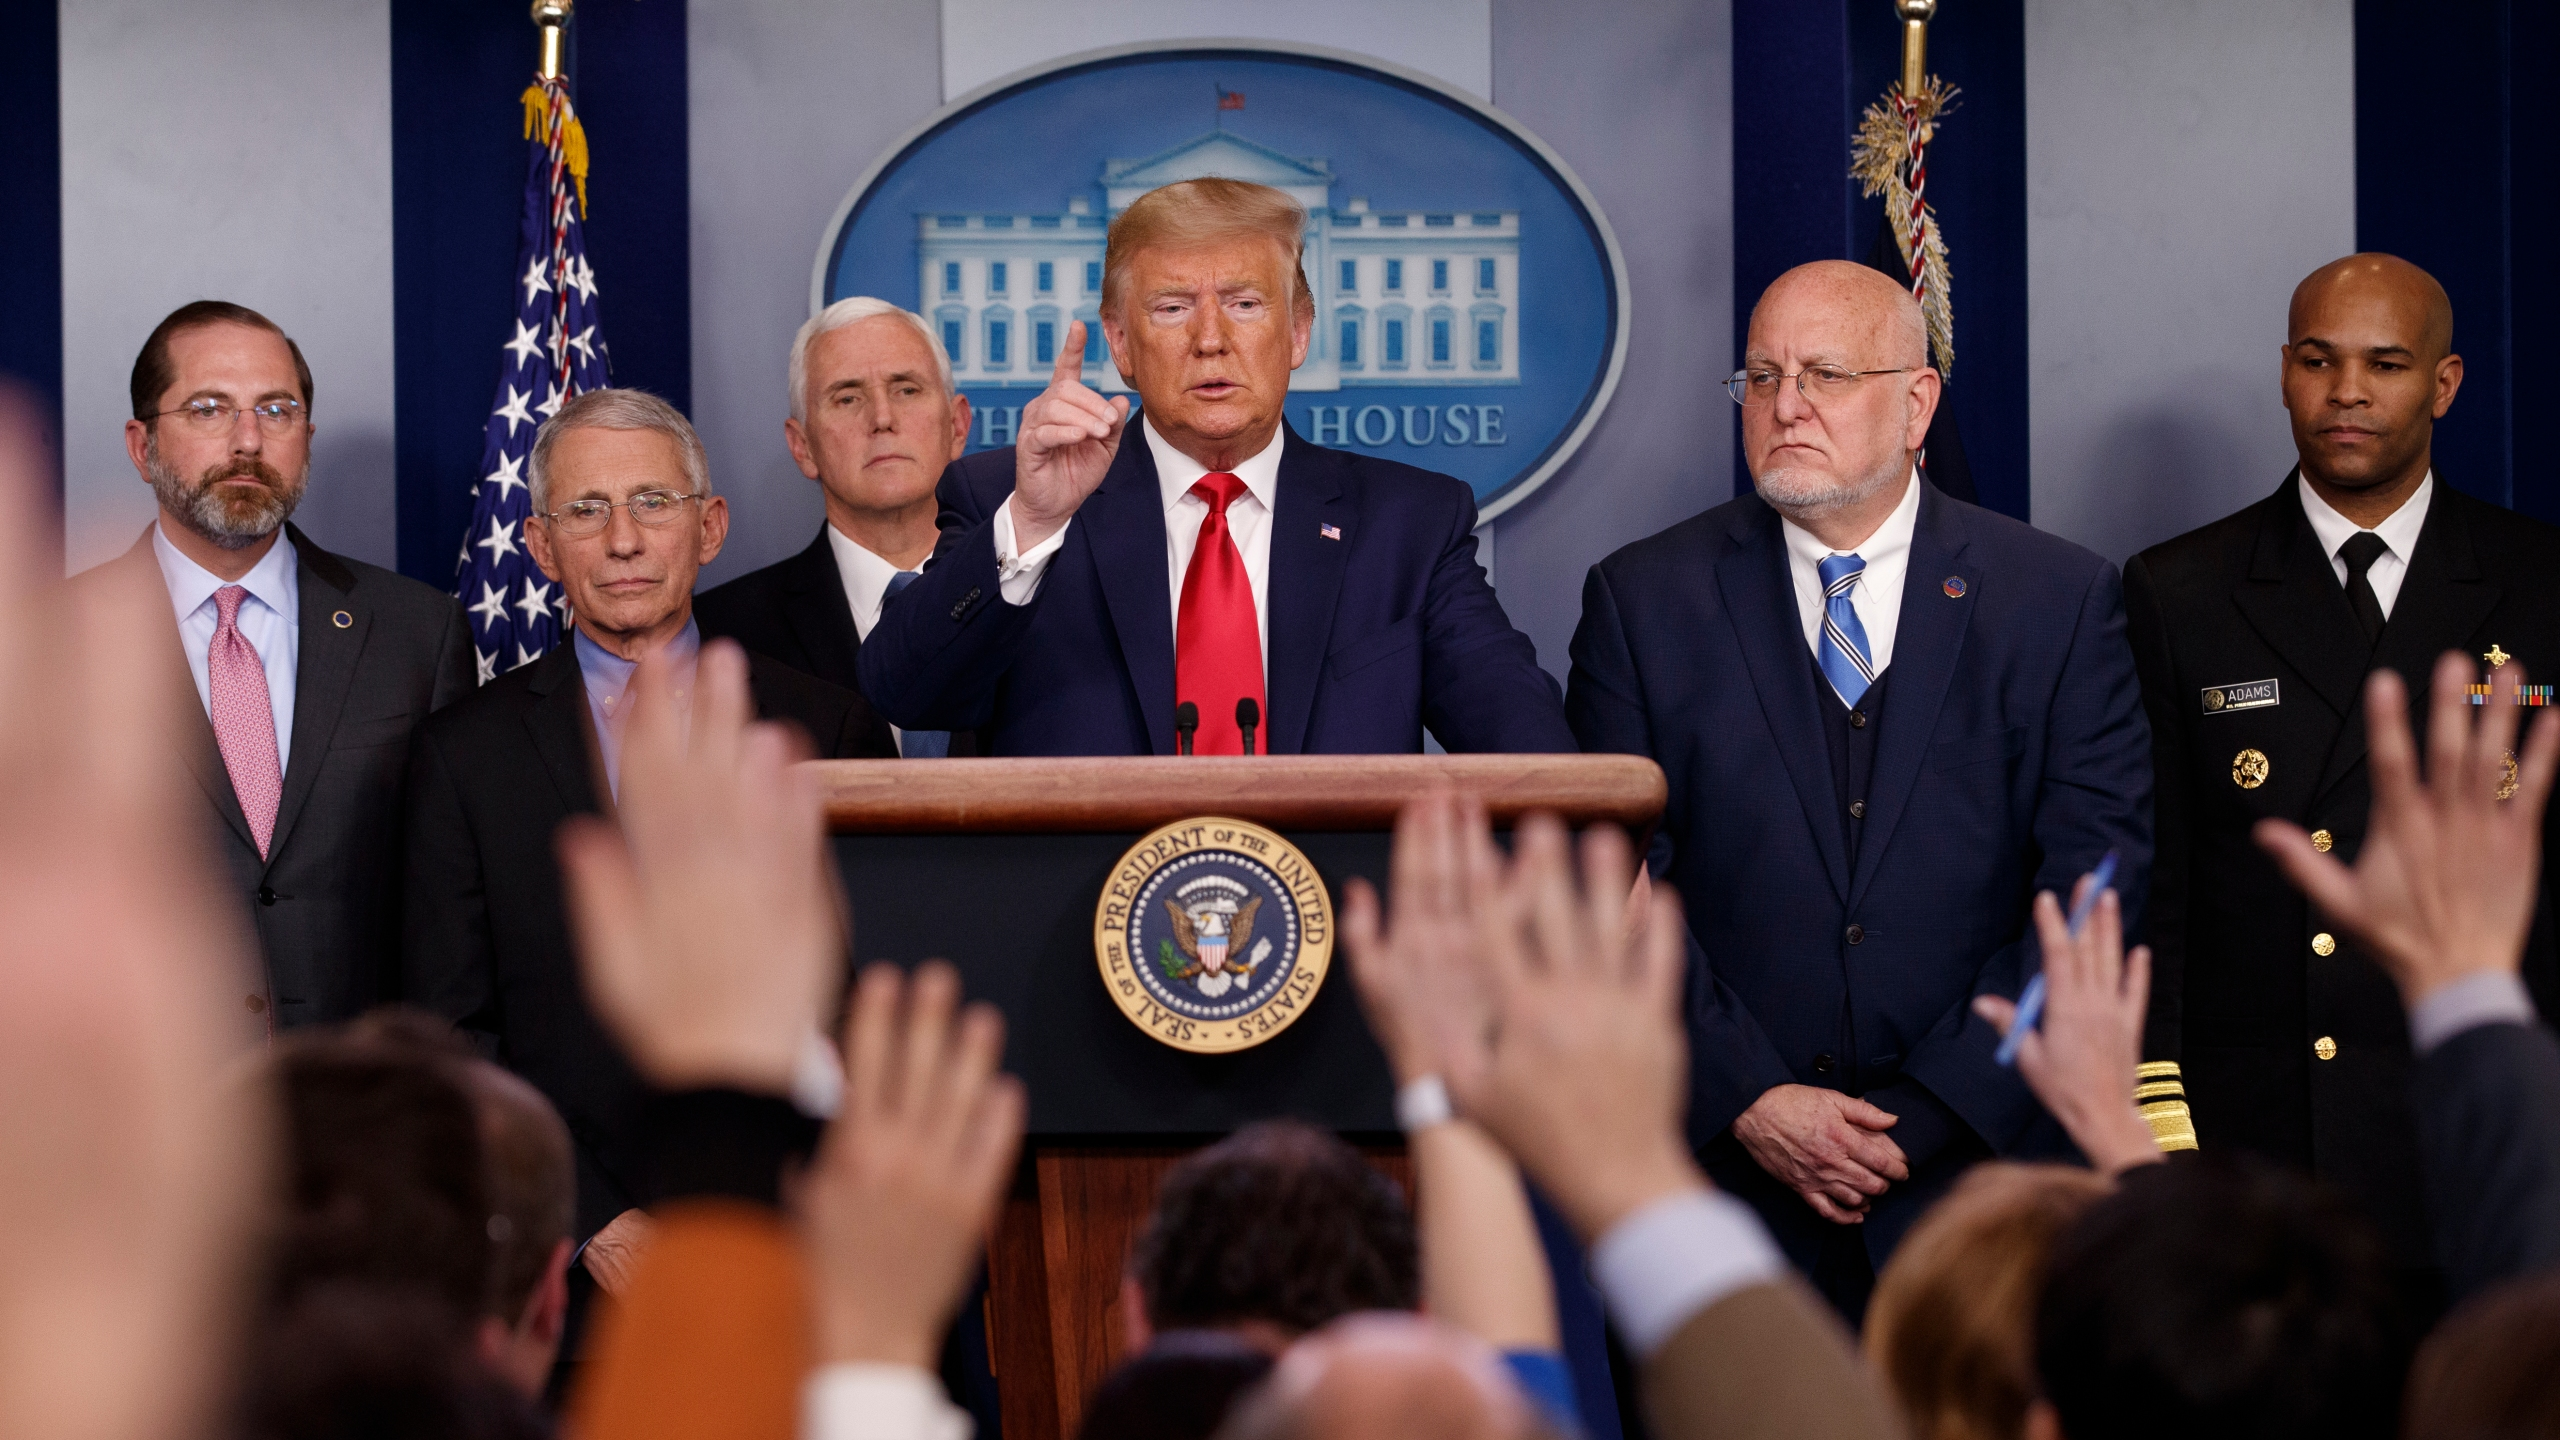 Donald Trump, Mike Pence, Alex Azar, Anthony Fauci, Robert Redfield, Jerome Adams